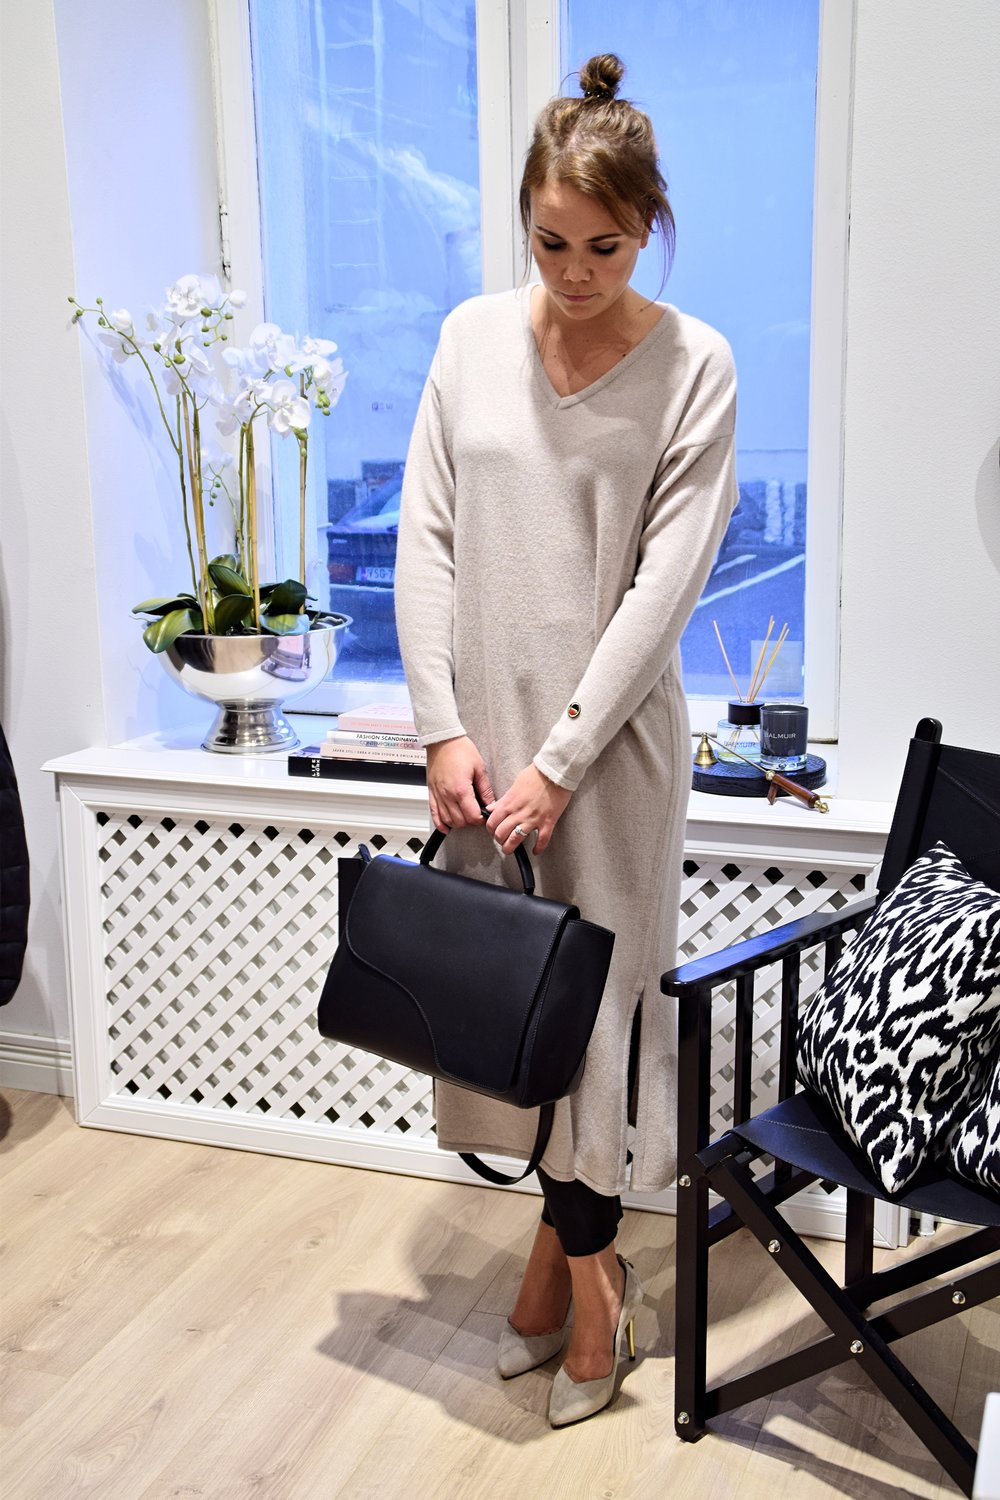 Gráces Dress, Busnel                                         Leather Pants, By Malene Birger / Bag, ATP Atelier / Shoes, afKlinberg